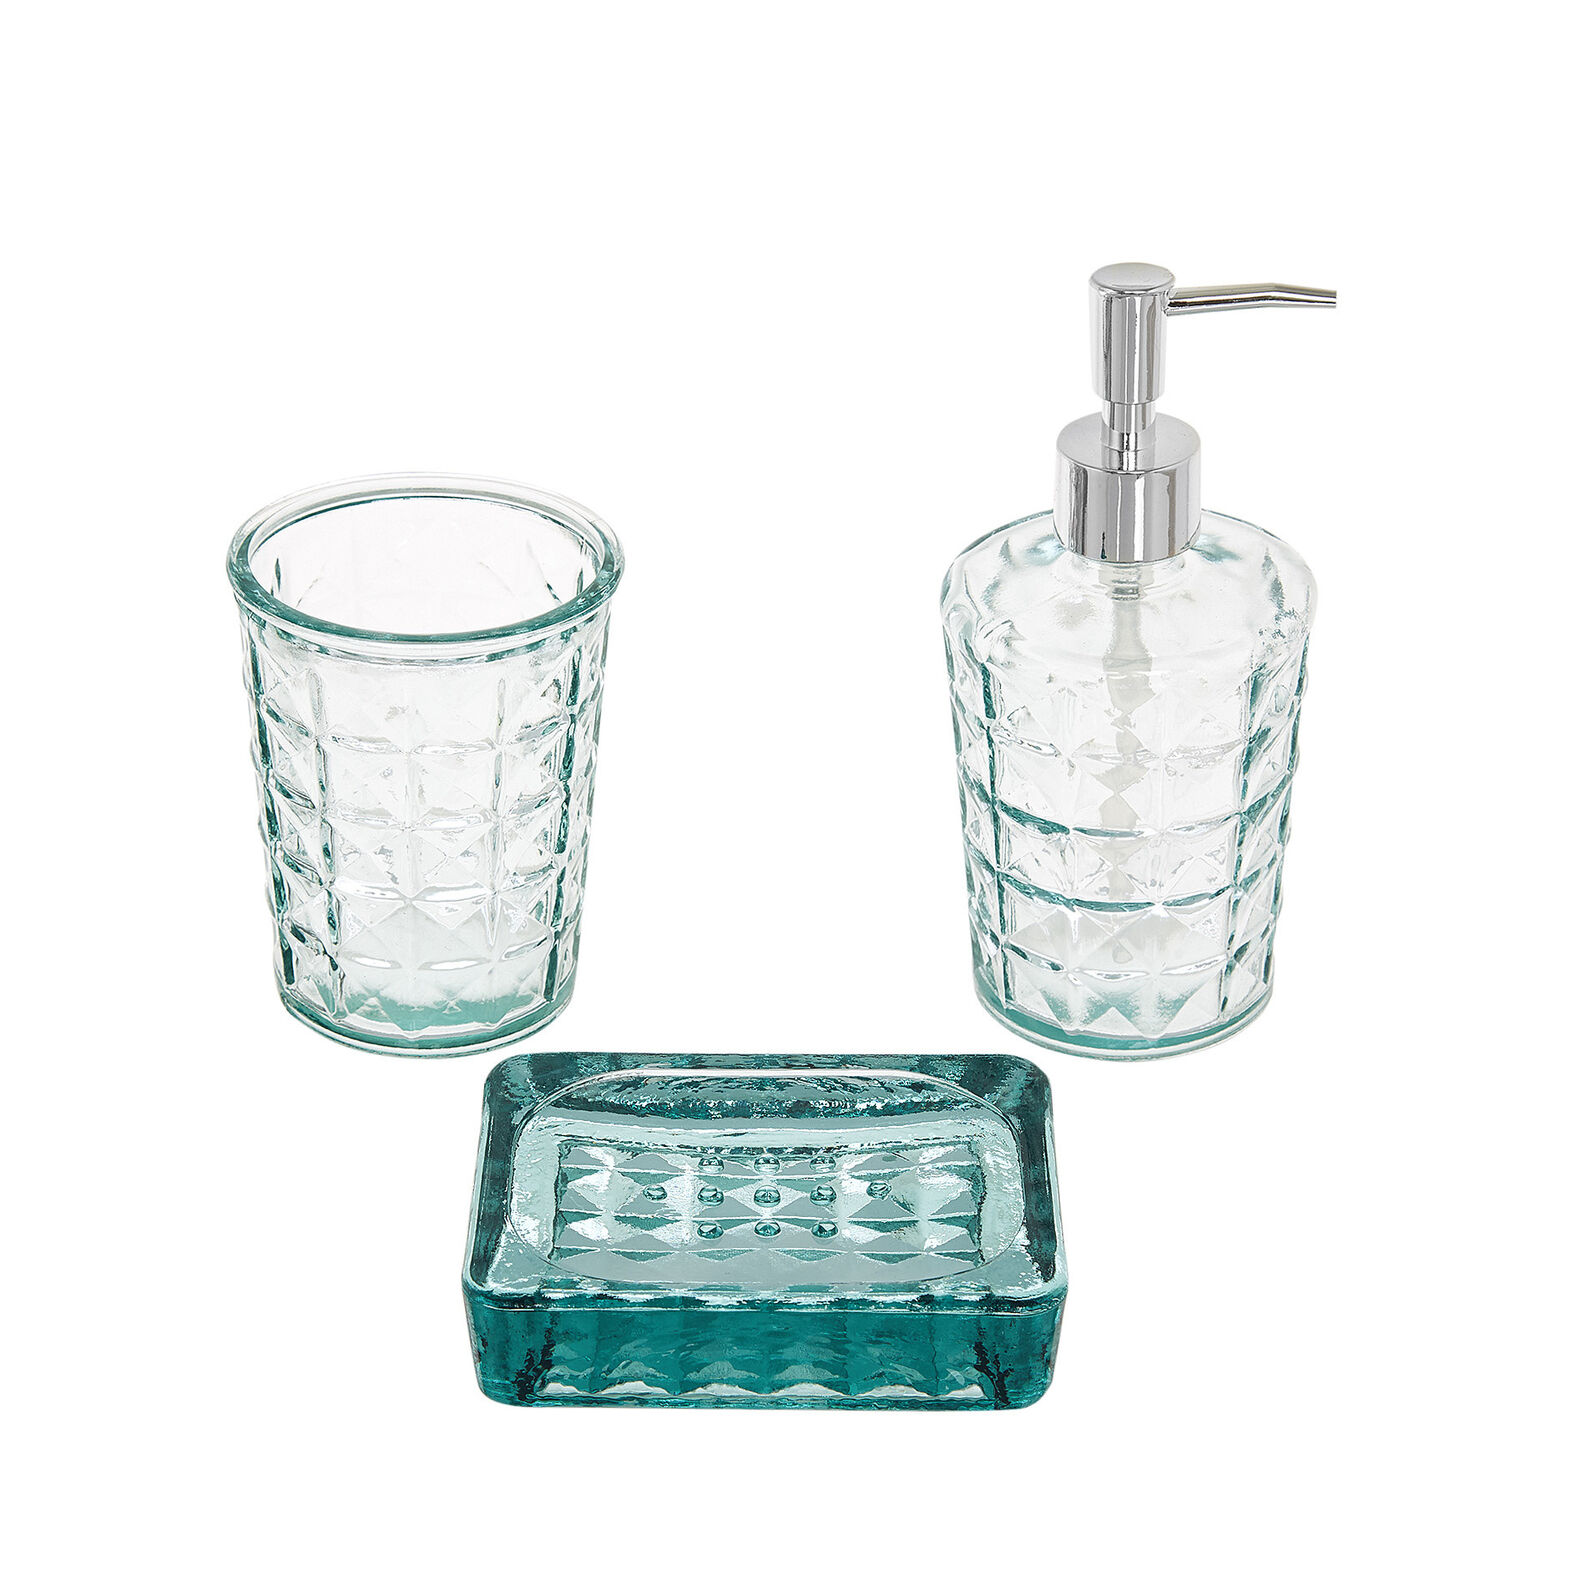 Set of 3 bathroom accessories in recycled glass